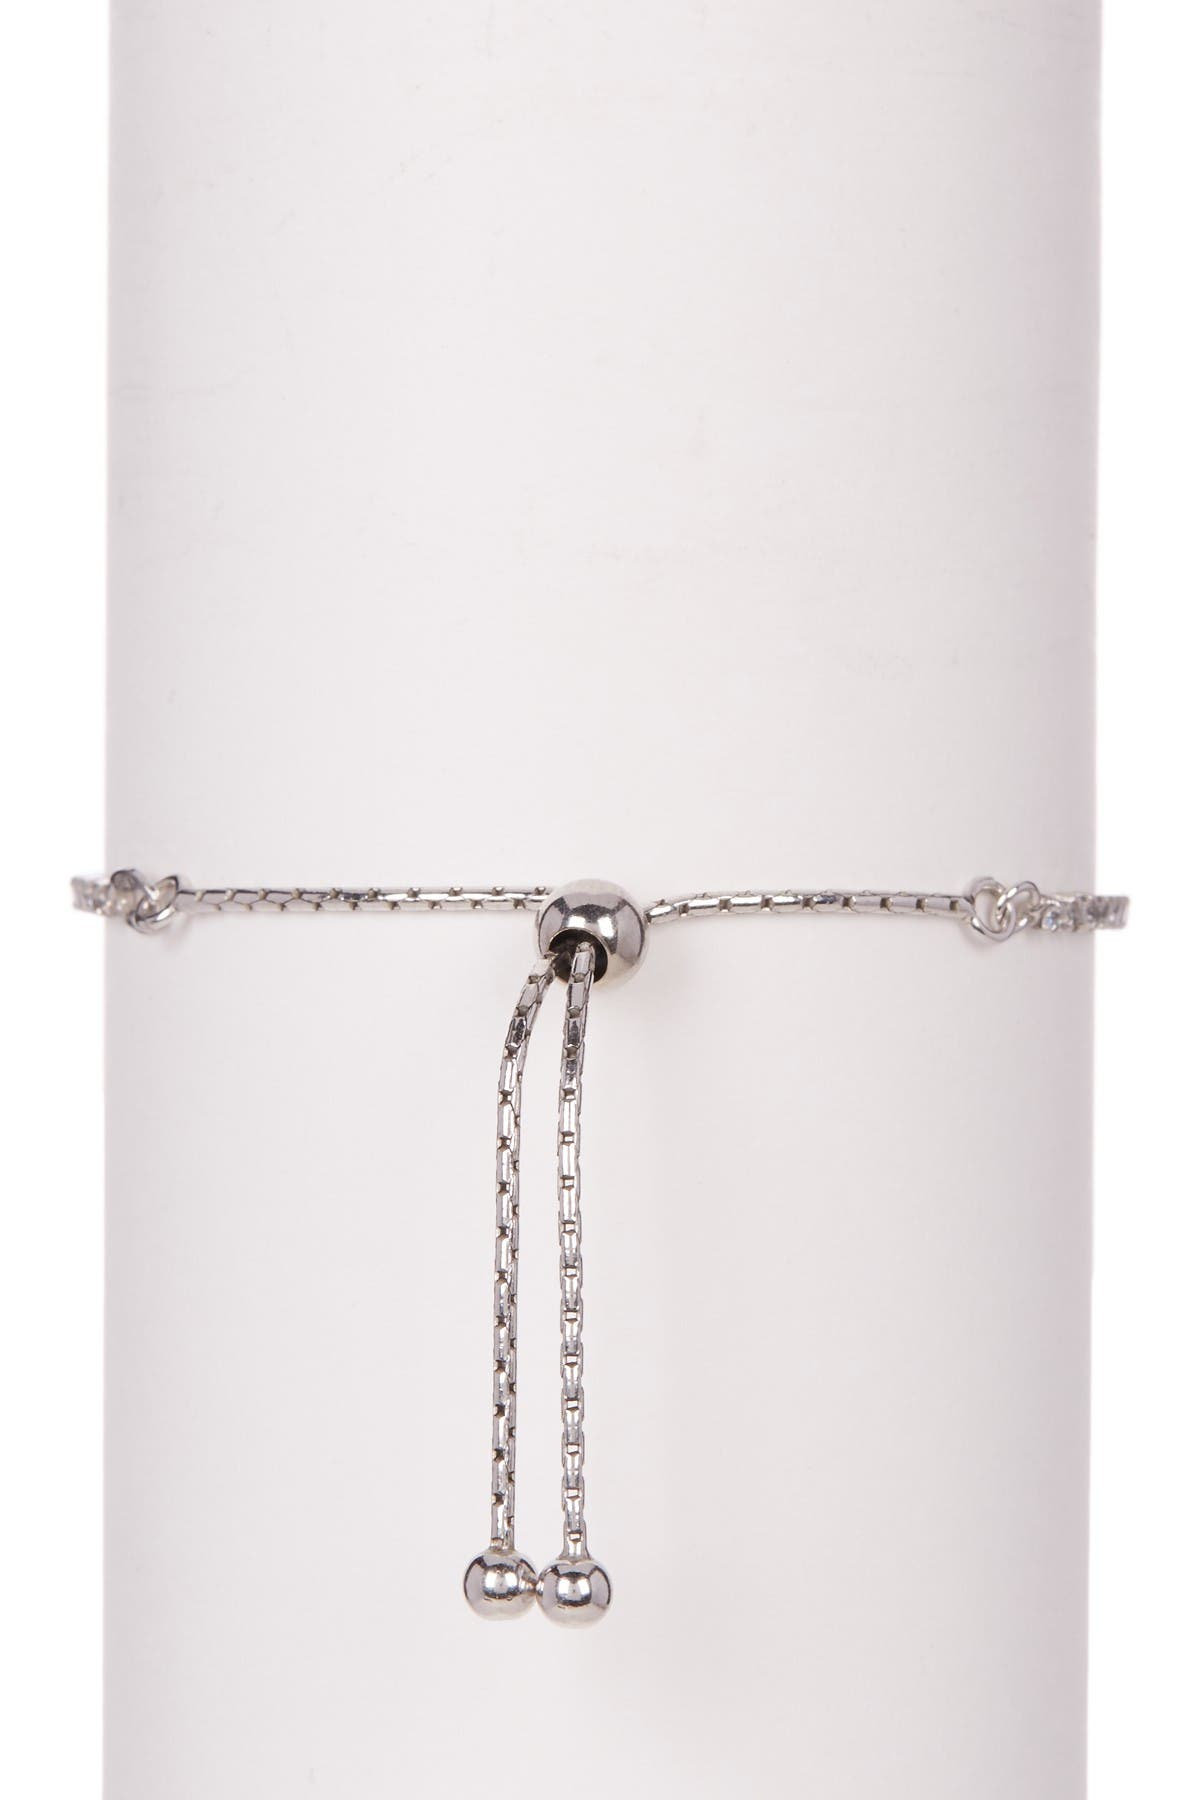 Image of Savvy Cie Sterling Silver CZ Pull Tennis Bracelet